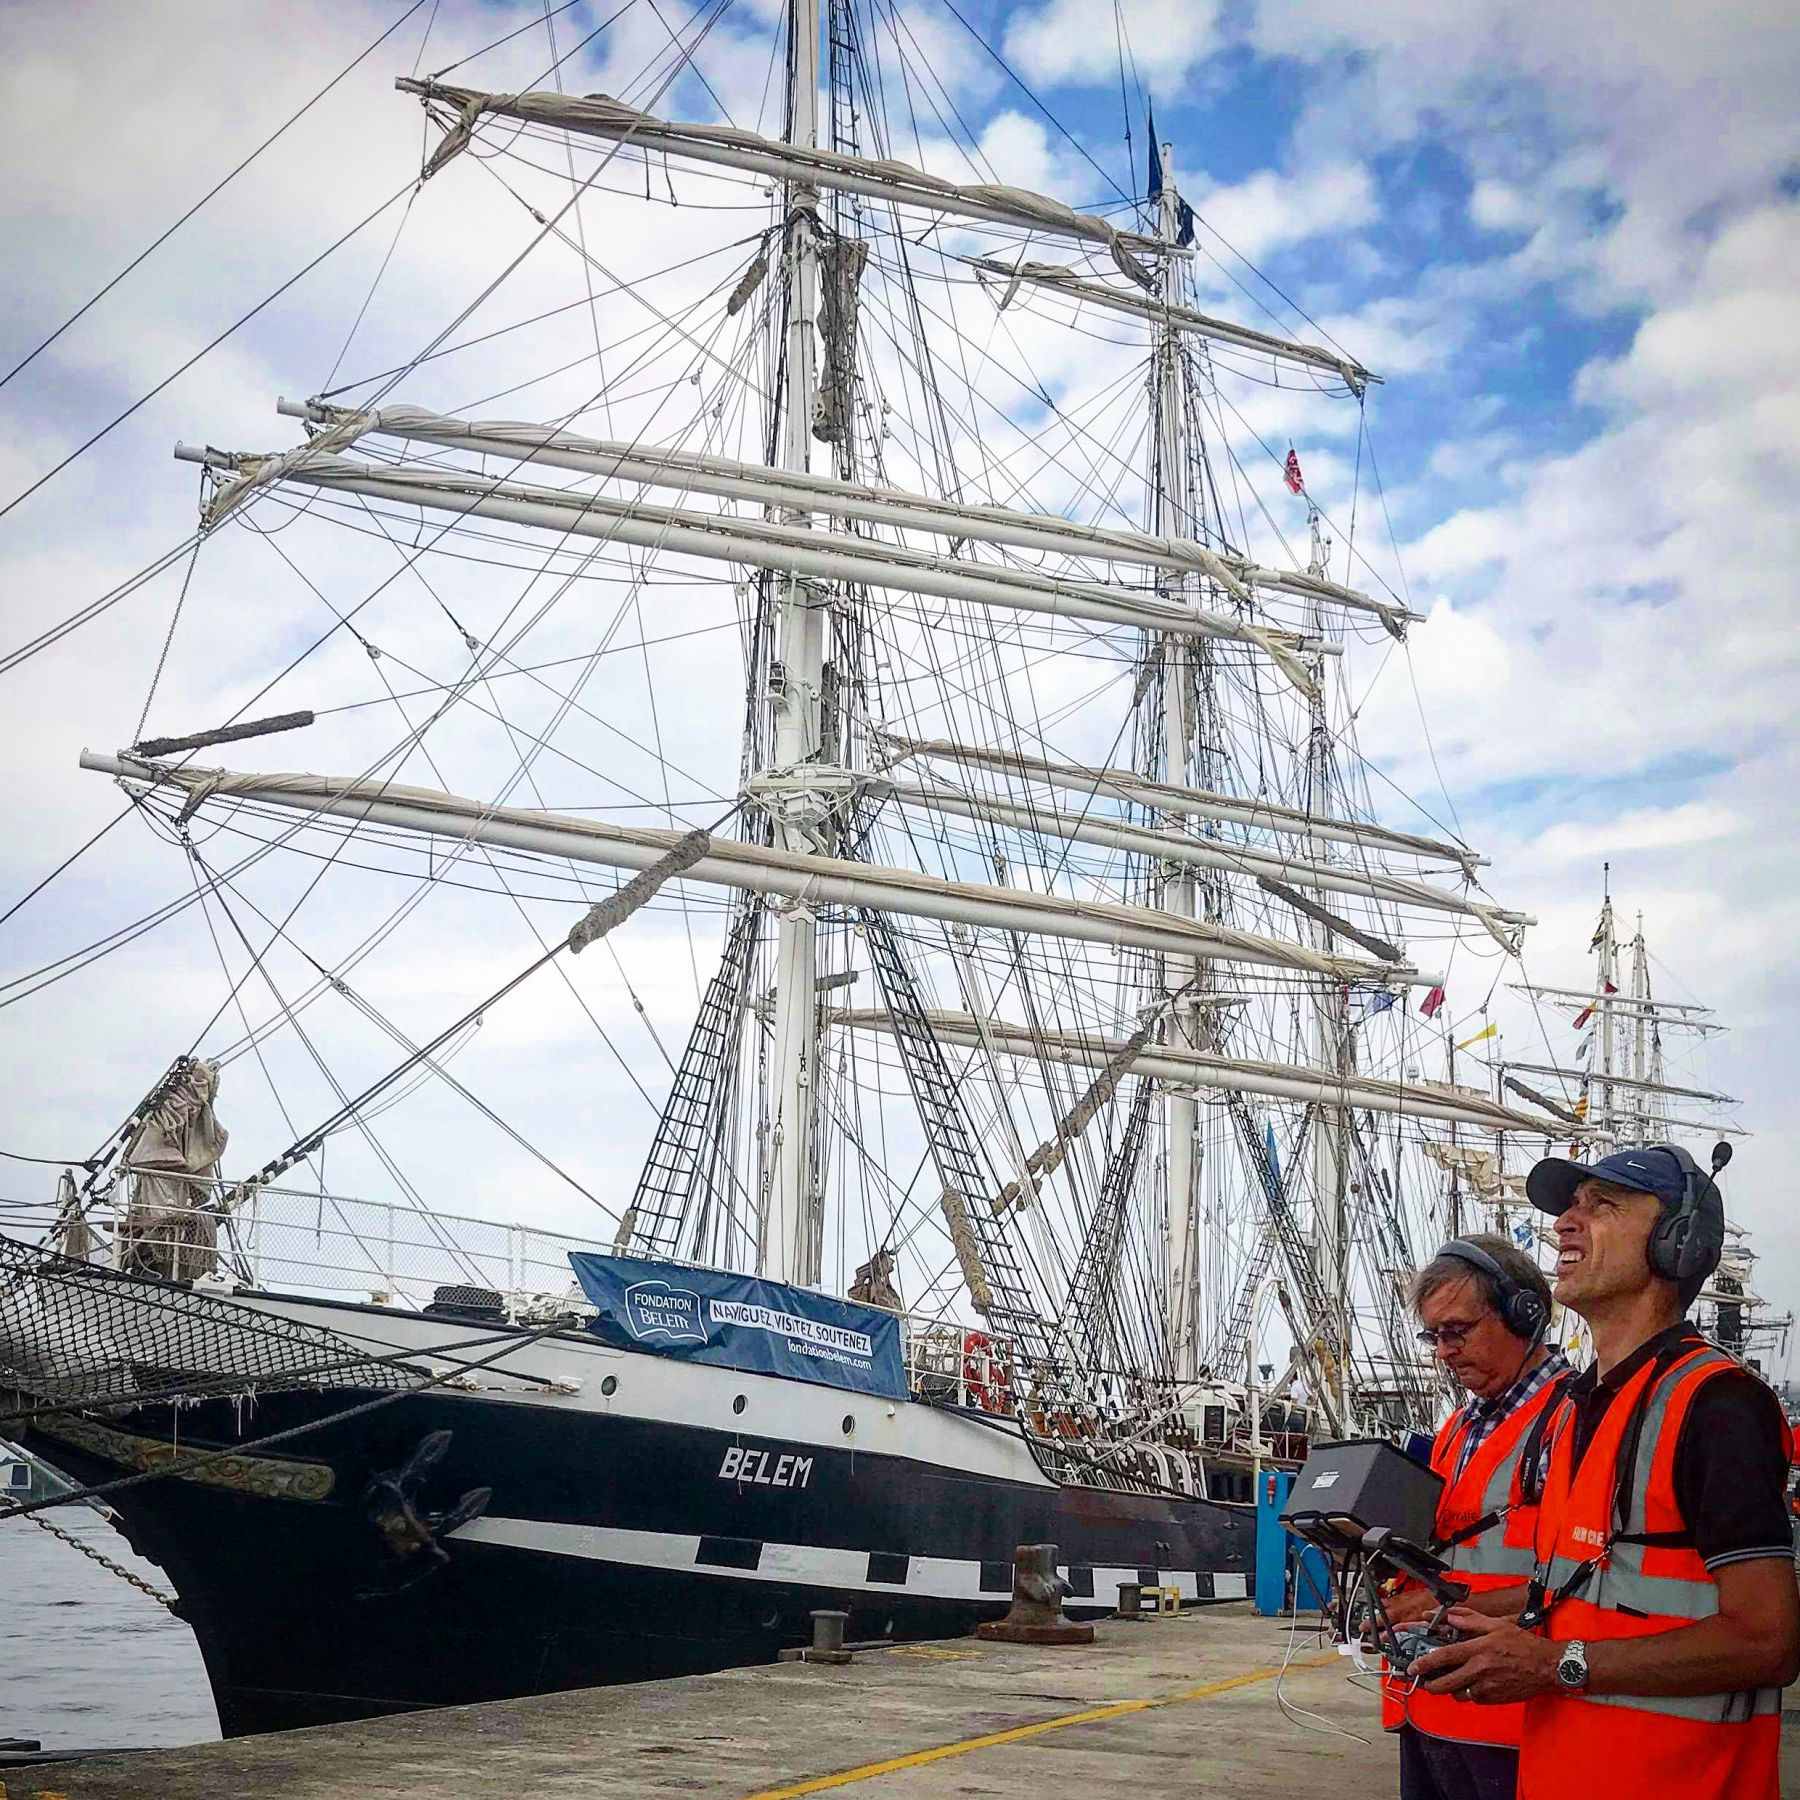 Drone Filming the Tall Ships at Liverpool in a multi crew set up.